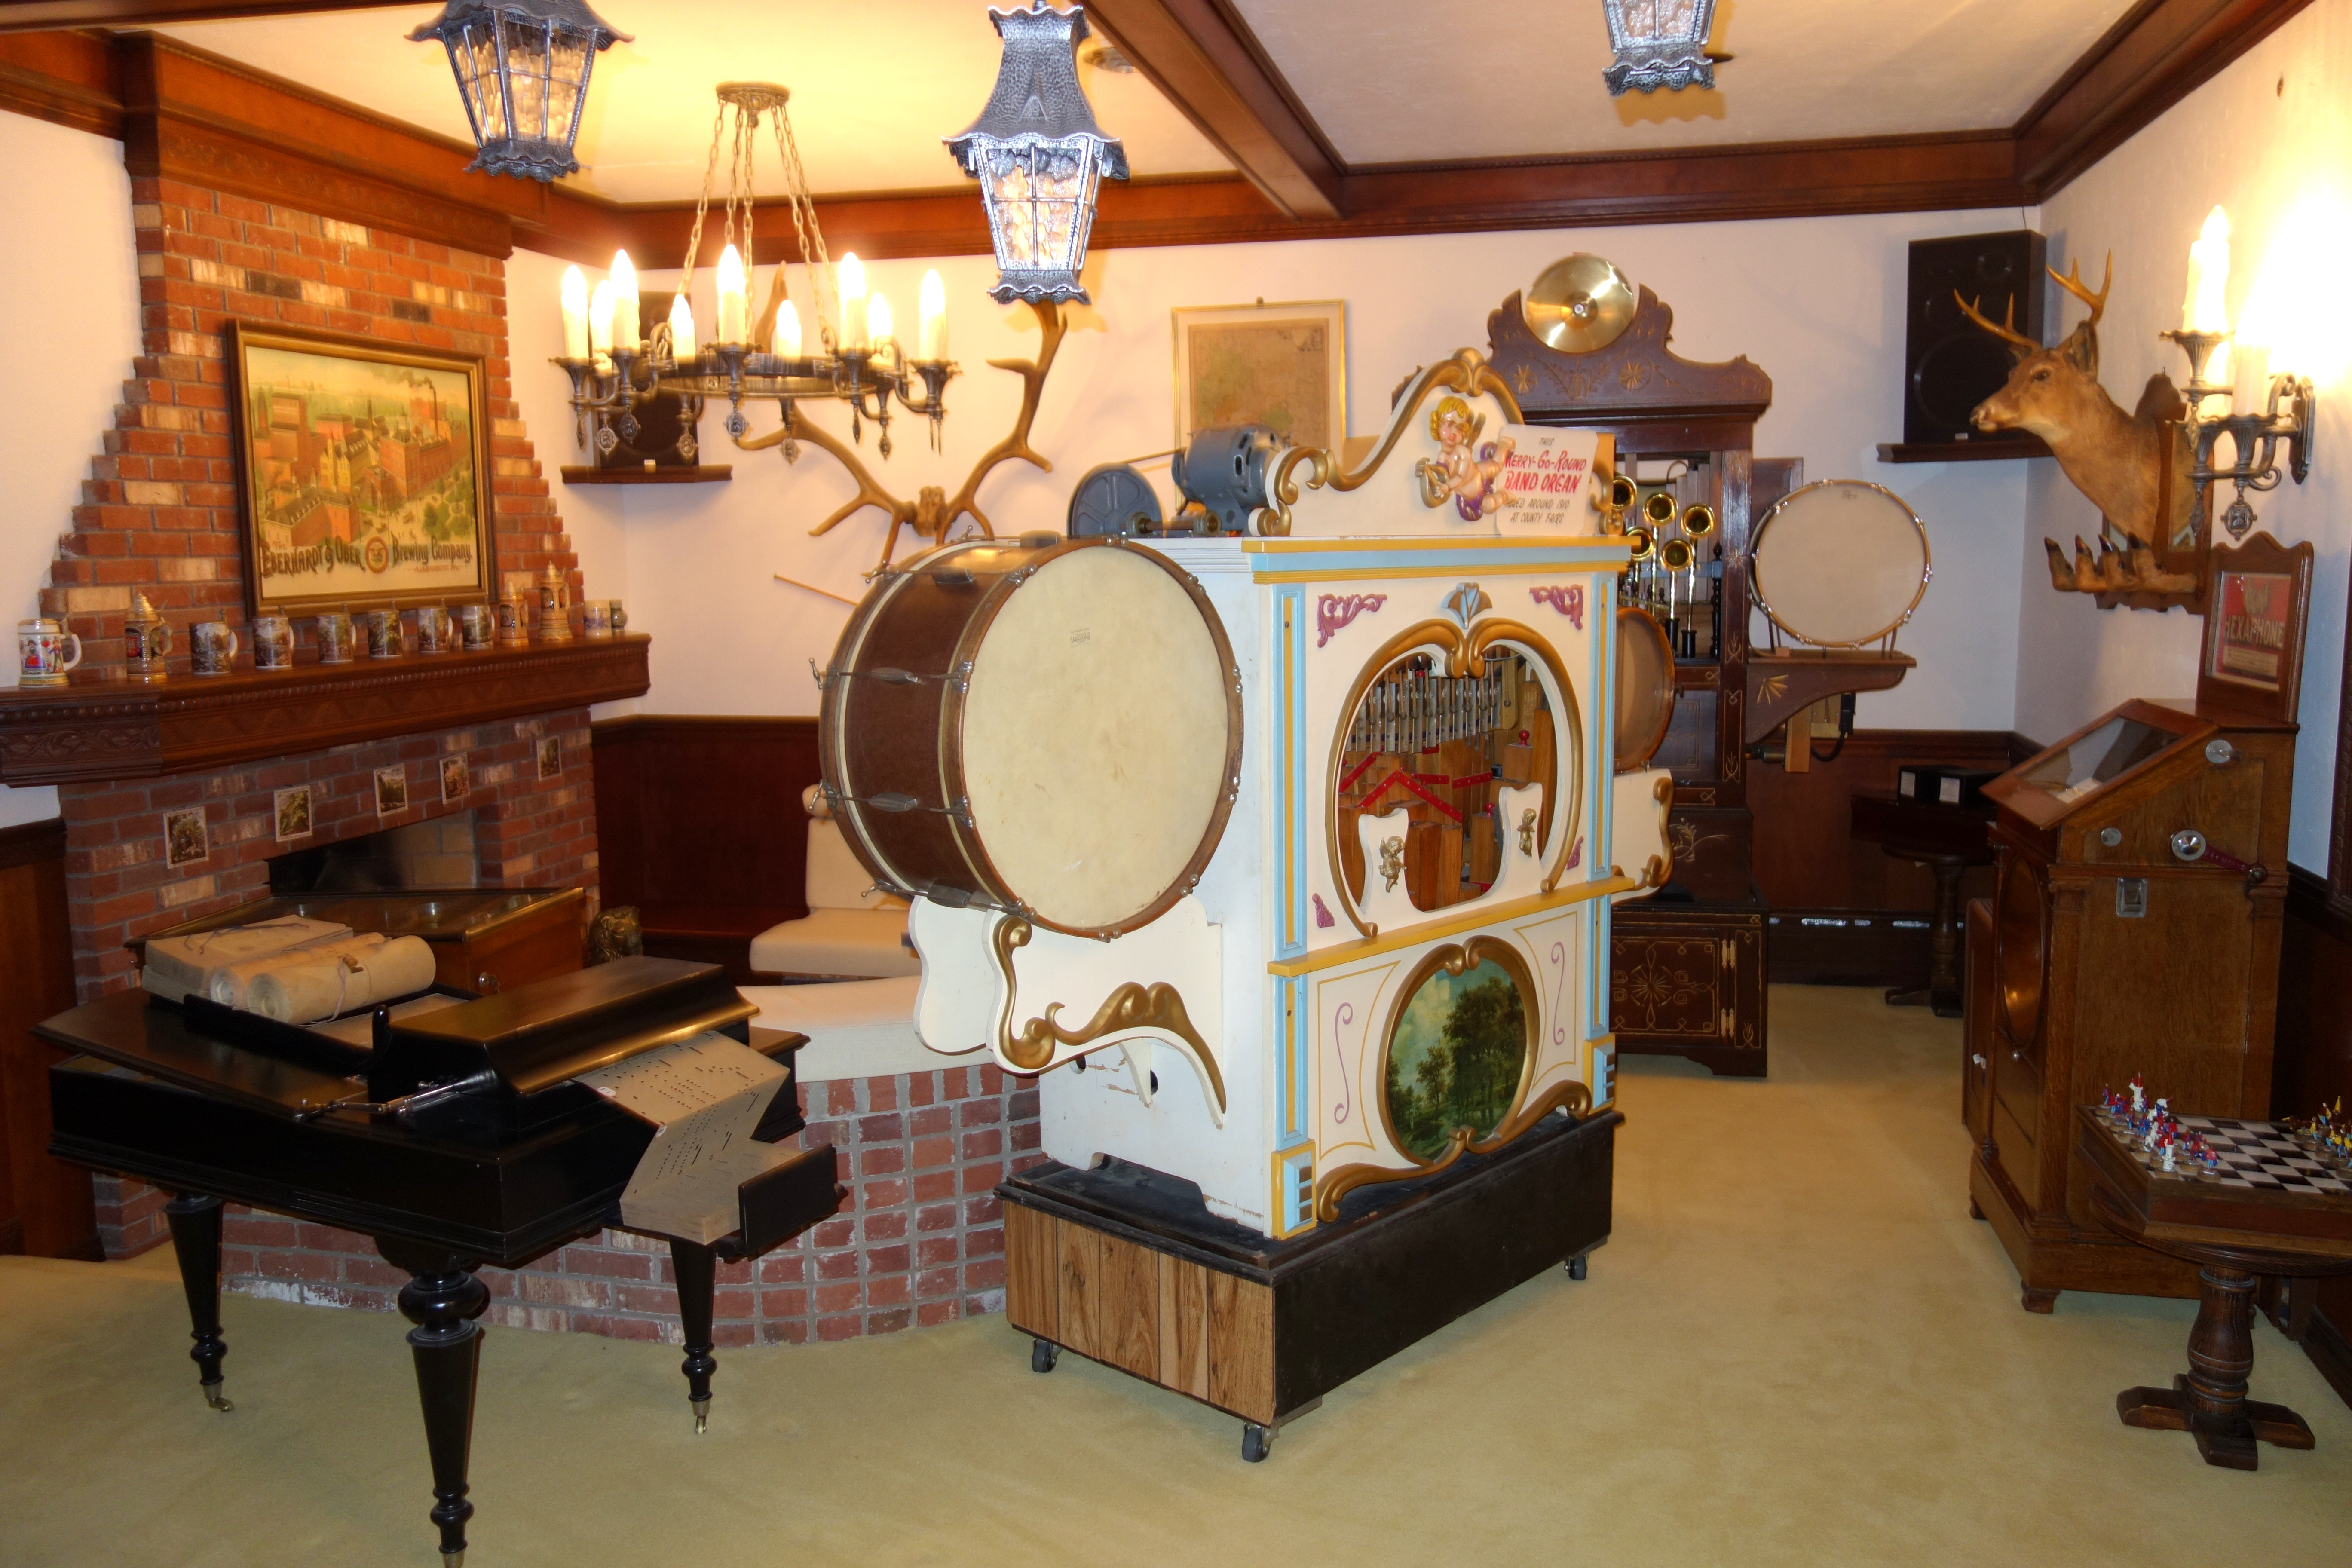 Some of Brown's music machines on display.